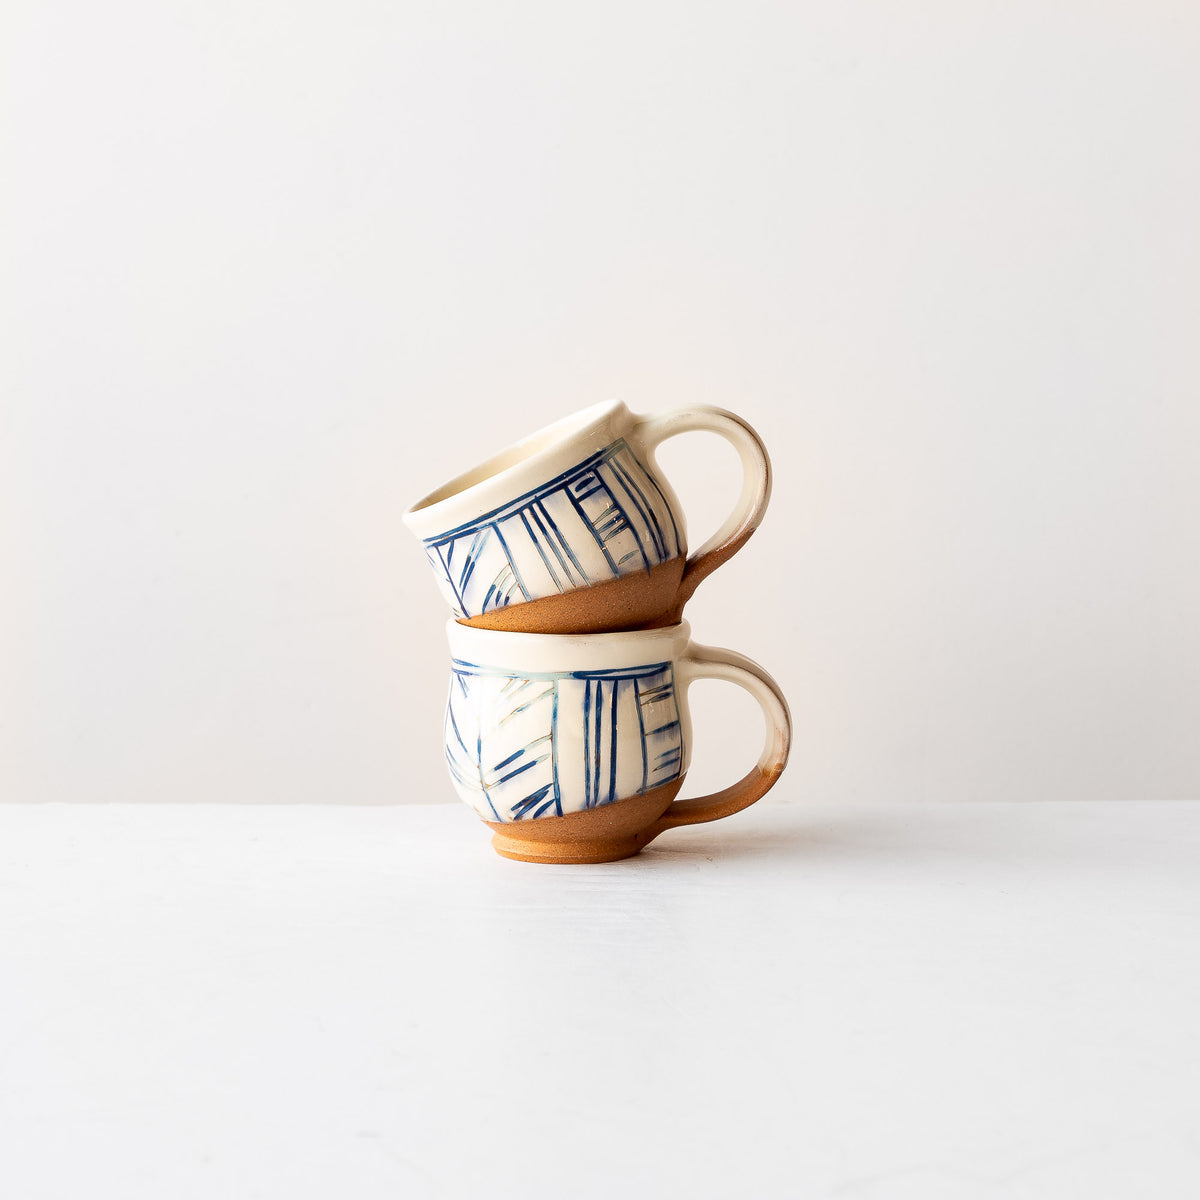 Two Handmade Mishima Espresso Cups With Blue Lines Pattern - Sold by Chic & Basta